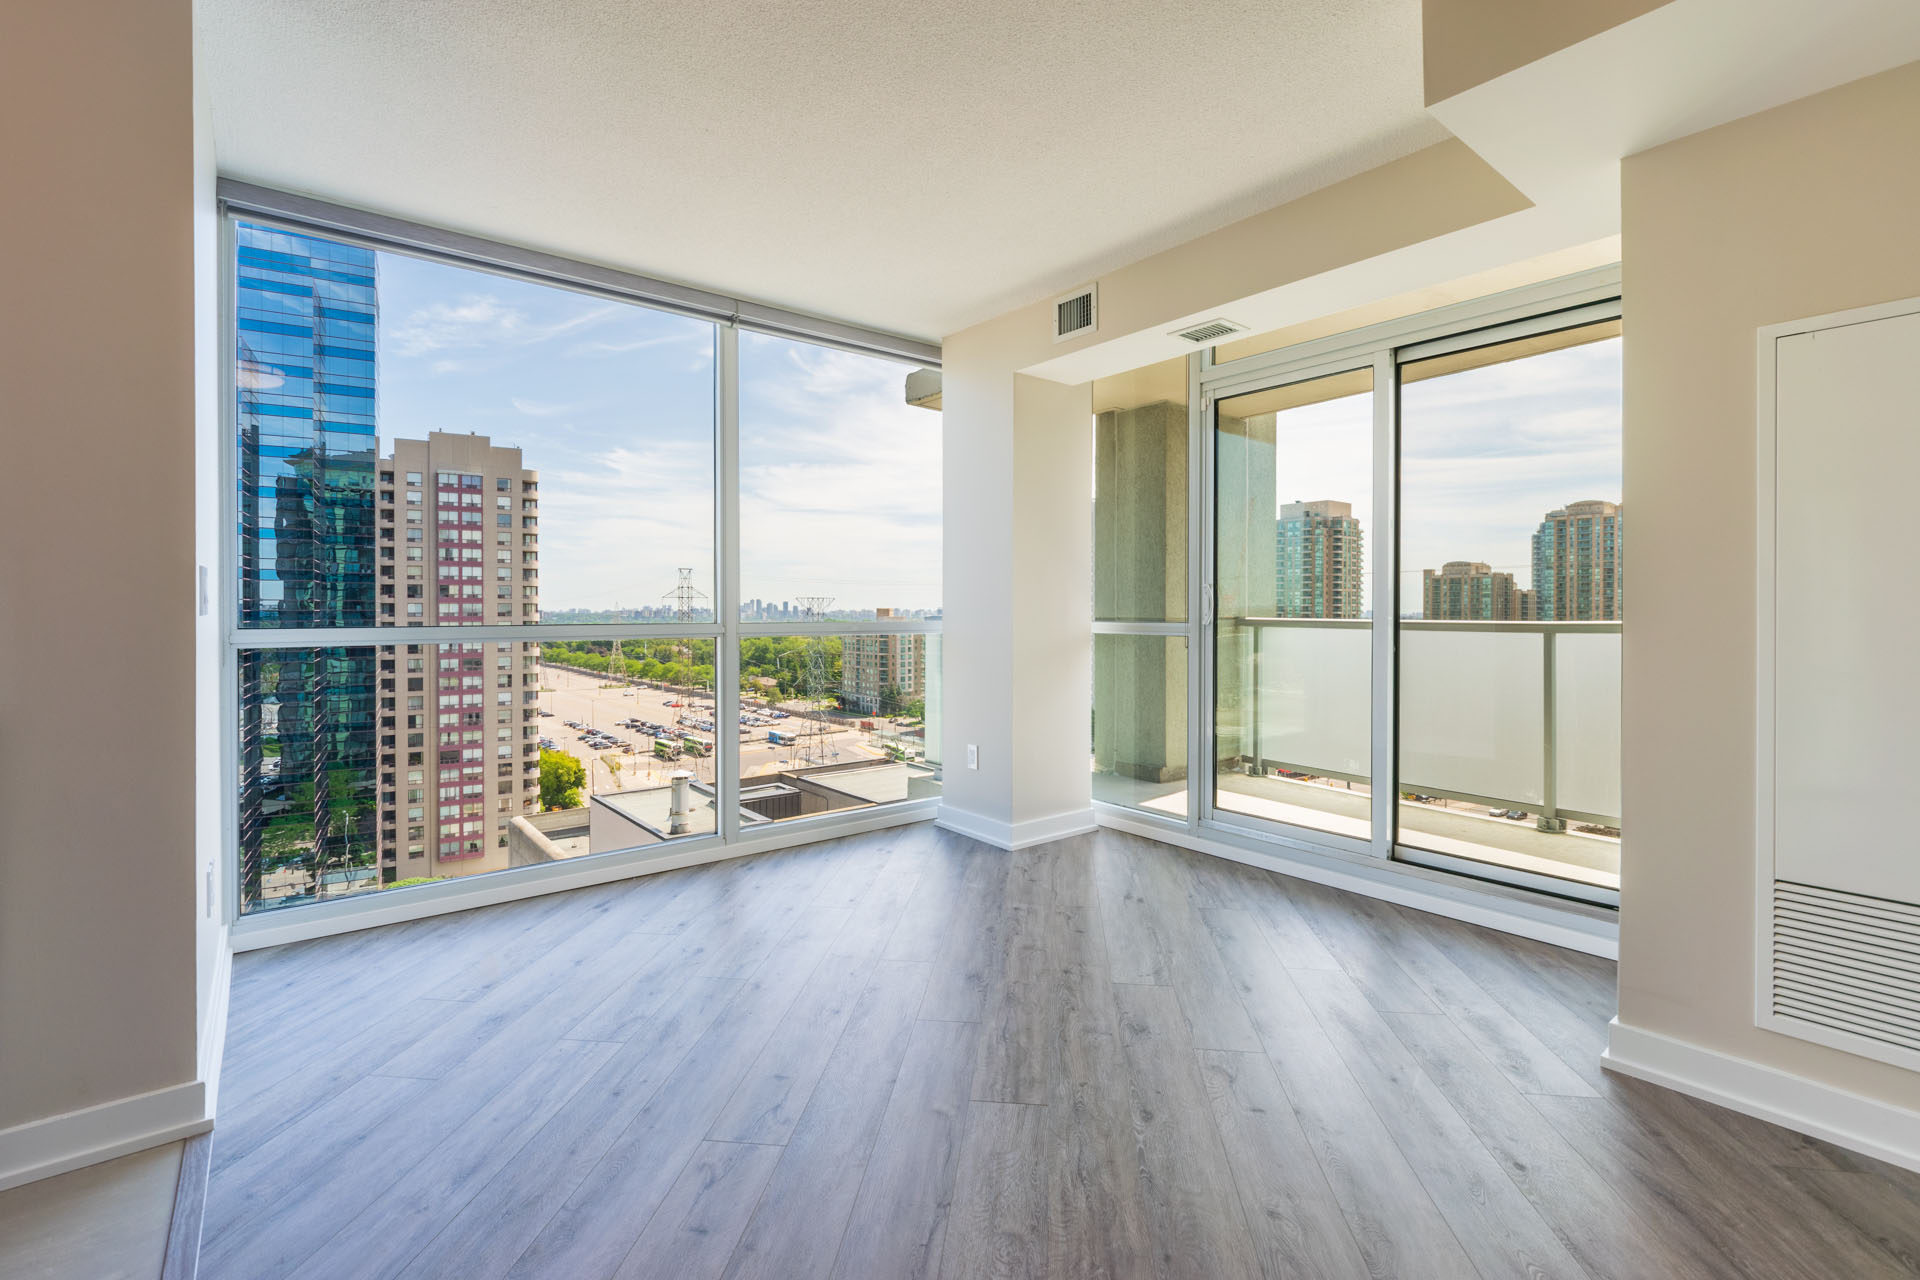 Rental Condo at The Palm, Downtown Toronto. Living Room, Large Windows, view of the City